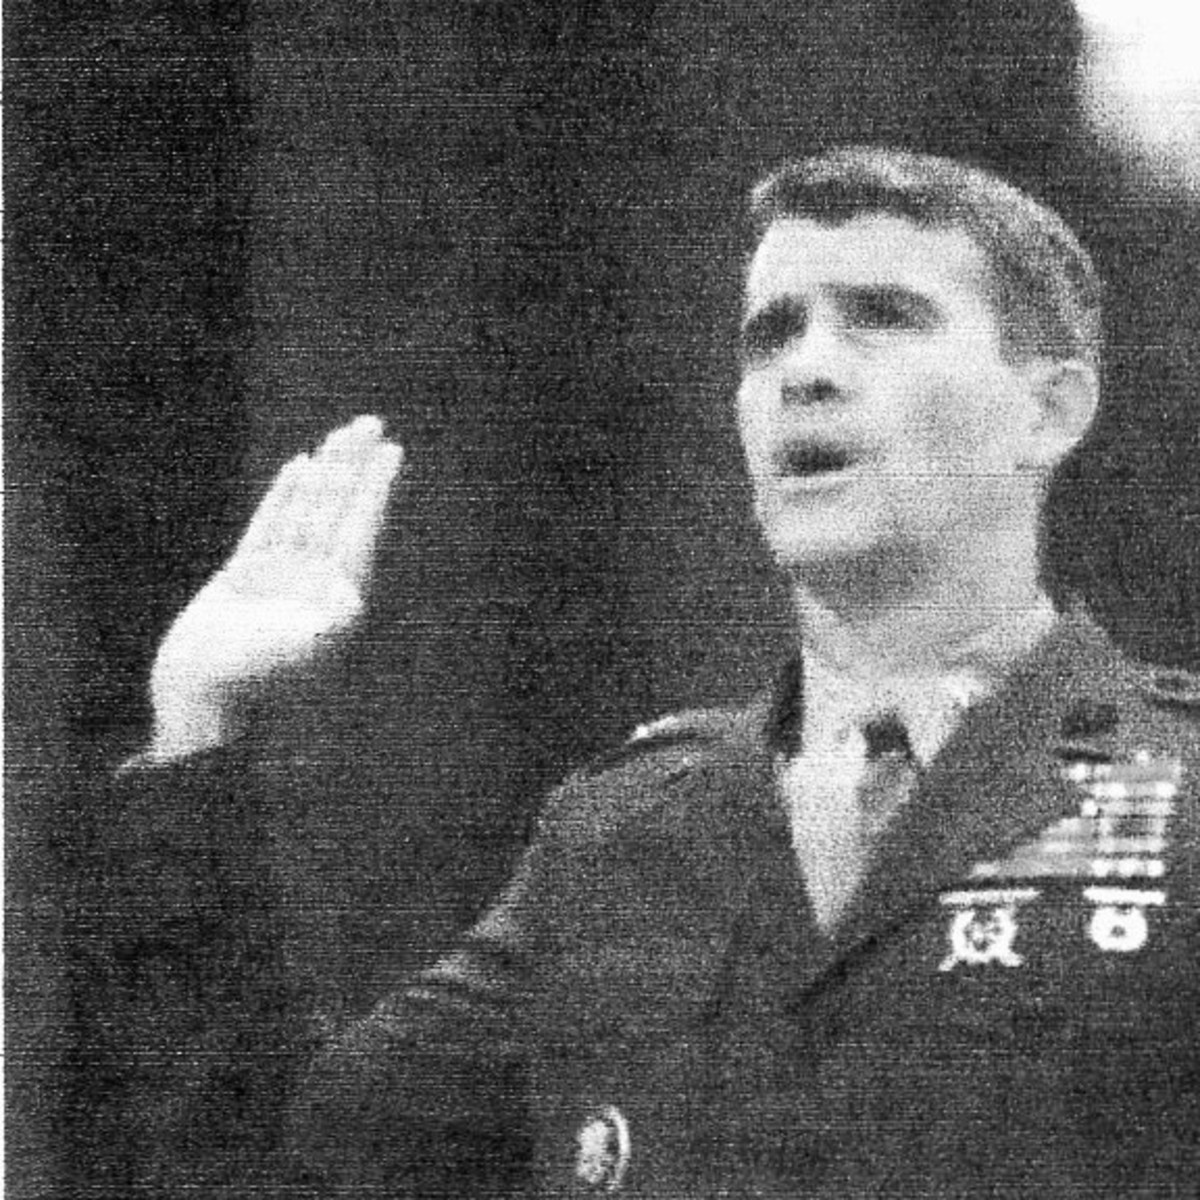 Colonel Oliver North: scapegoat of the Contra/Iran affair - proceeds from arm sales to Iran diverted to Contras. North later convicted. Reagan cleared of any involvement.